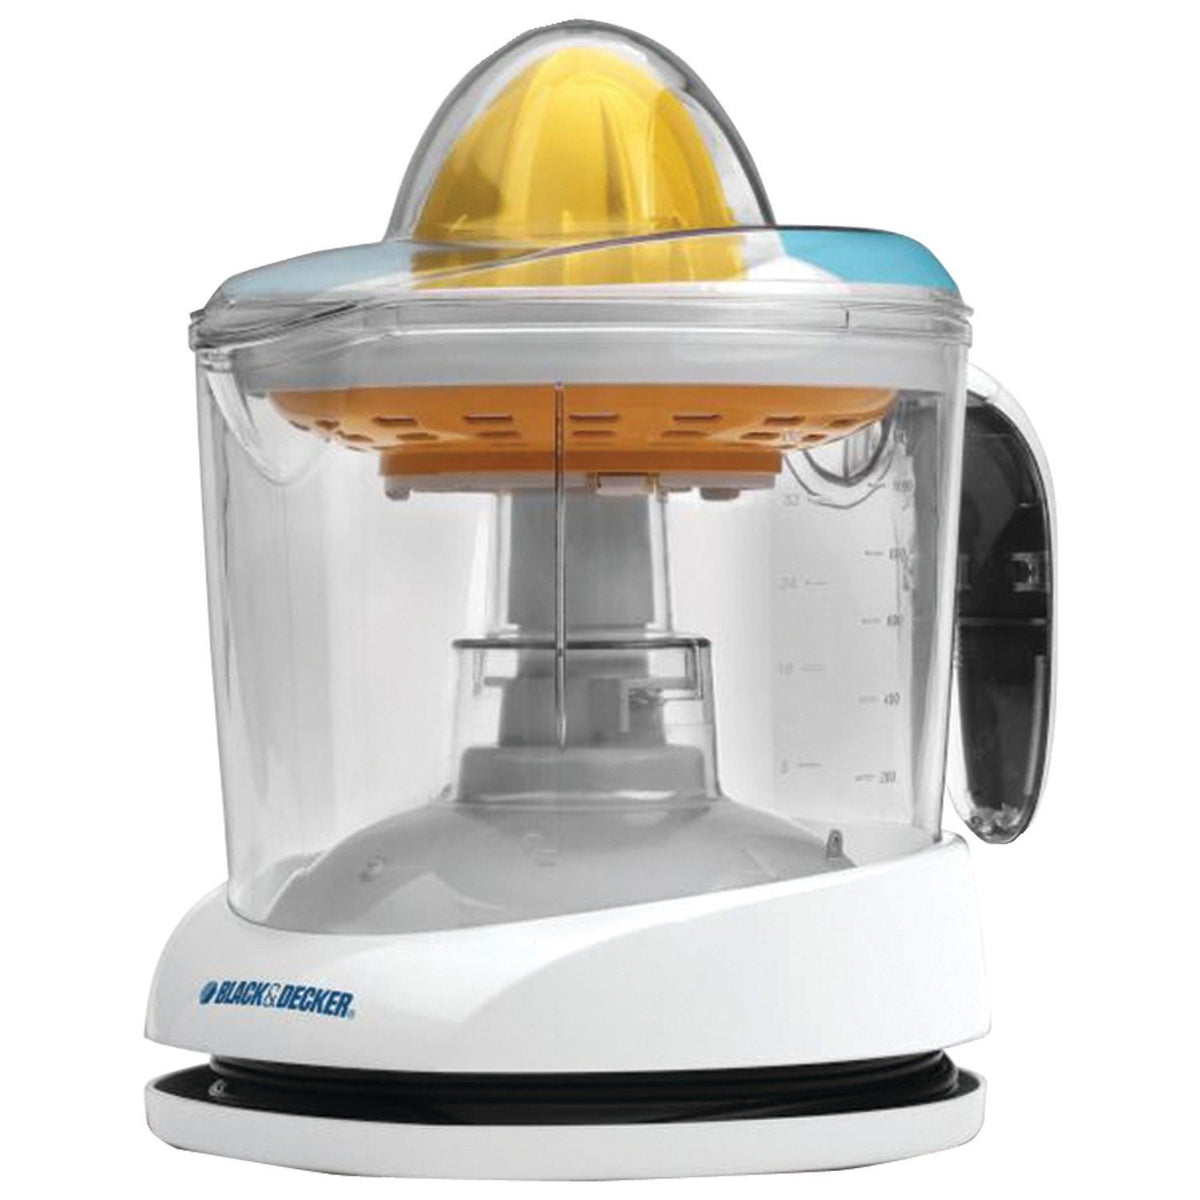 Black & Decker CJ625 30-Watt 34-Ounce Citrus Juicer, White - All In One Place With Us - 5